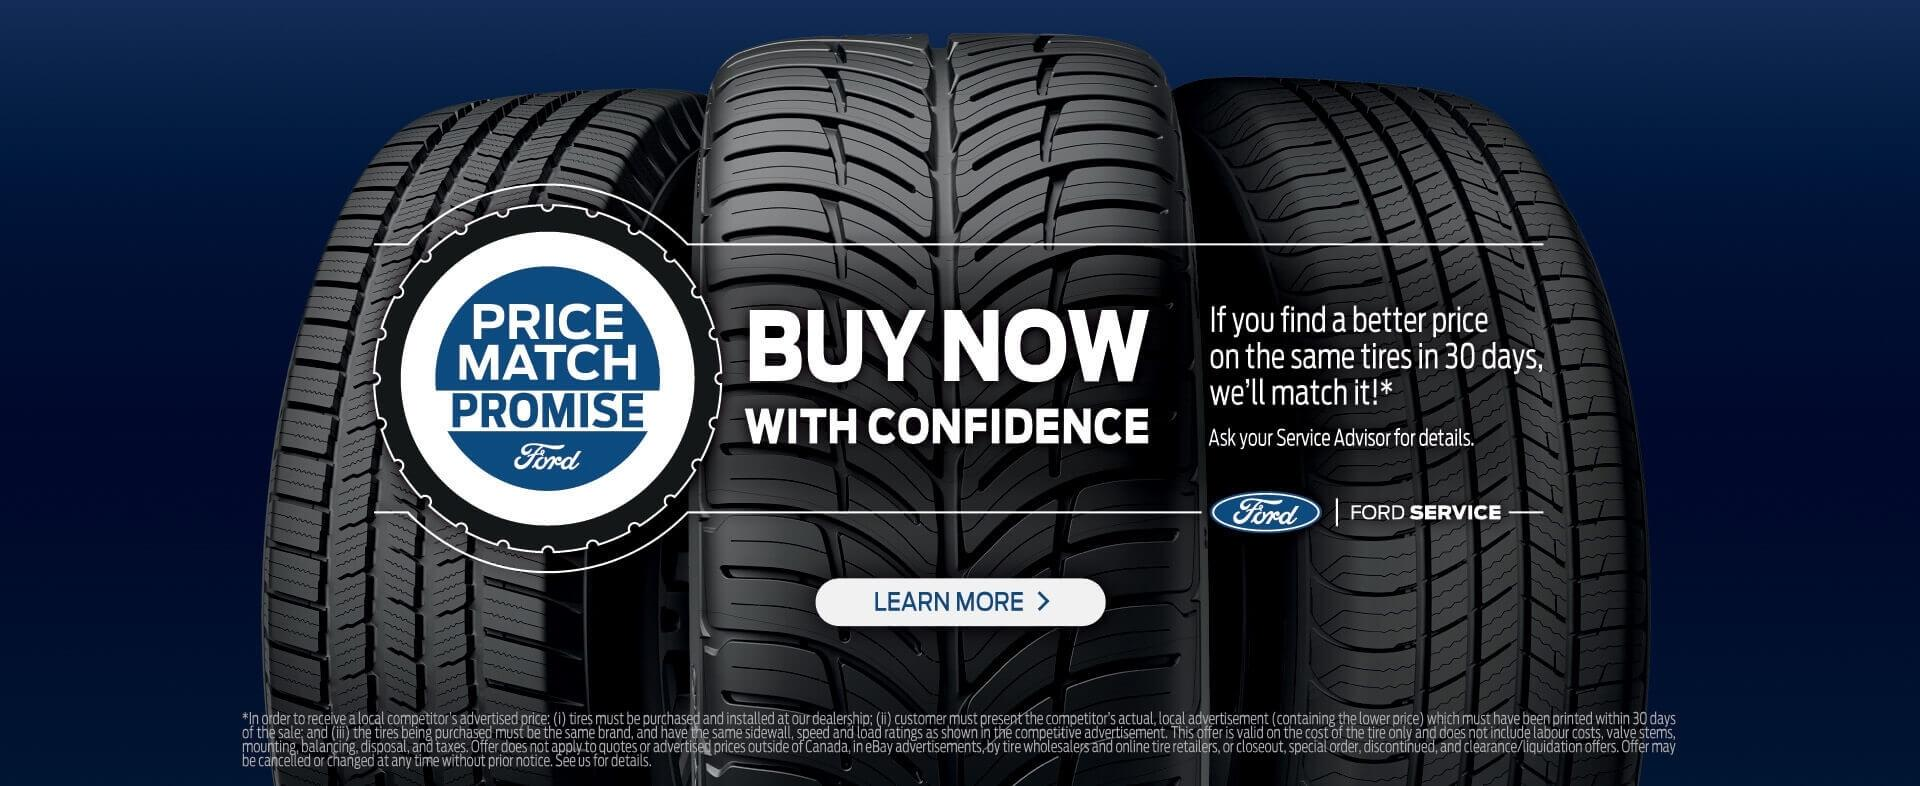 Price Match Promise | The Right Tires | Steele Ford Lincoln